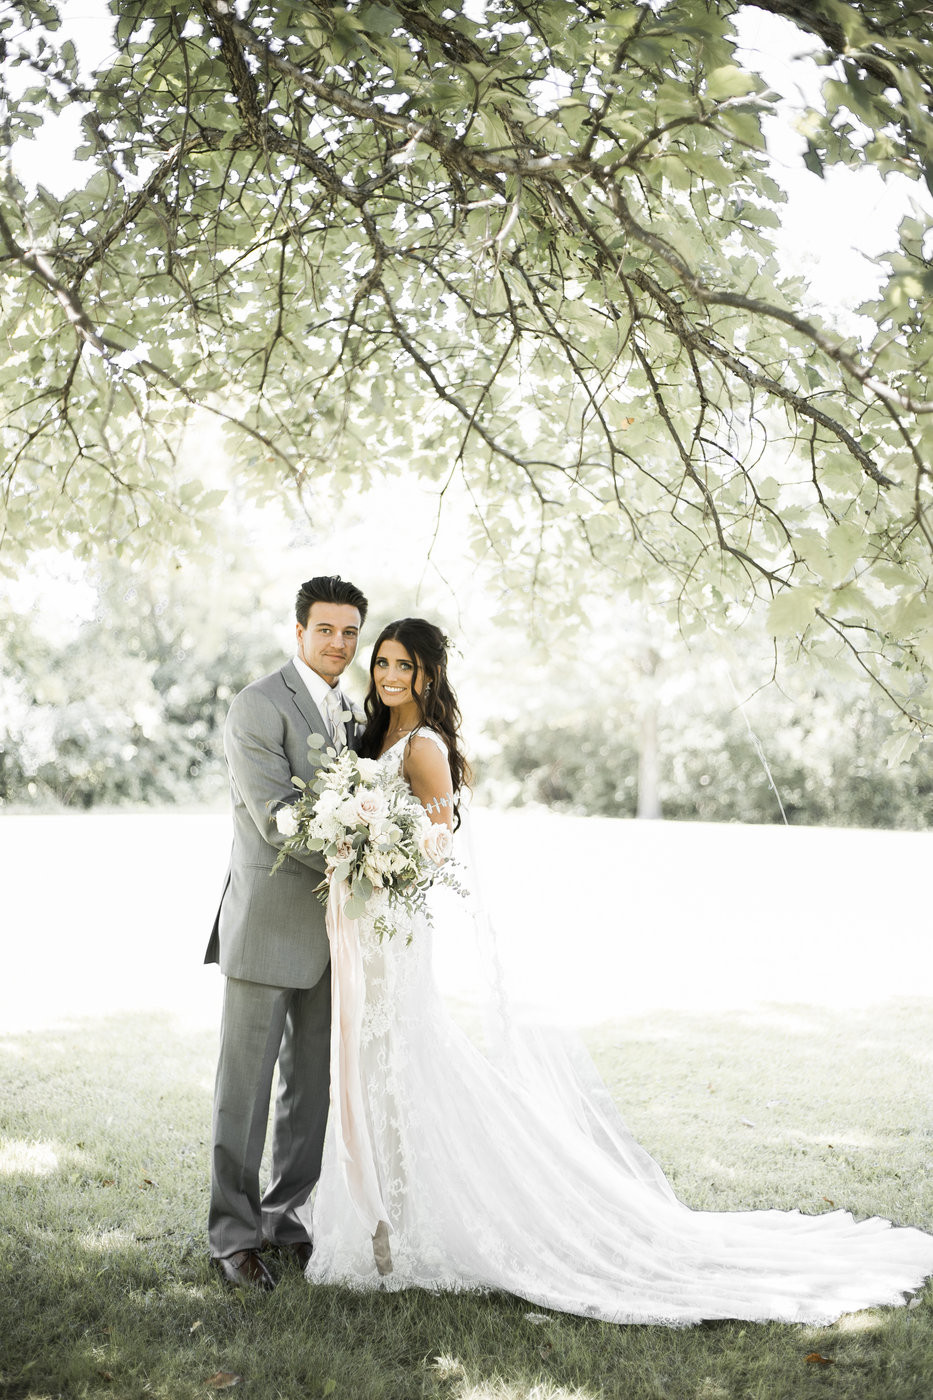 bride and groom posing outdoors under large tree holding garden style wedding bouquet by studio bloom iowa